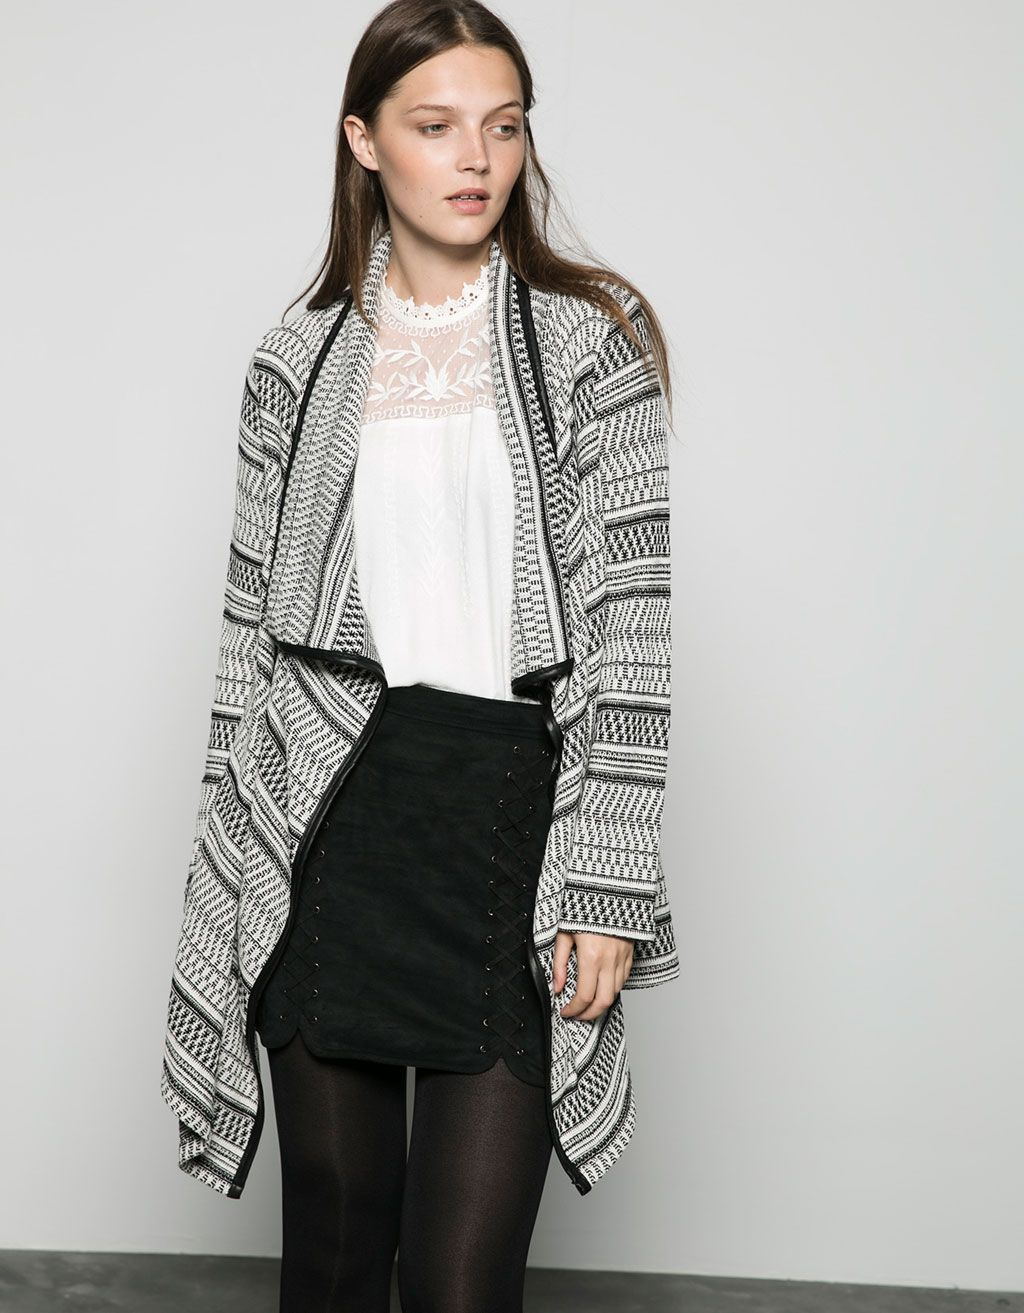 Bershka jacquard draped imitation leather detail jacket. Discover this and many more items in Bershka with new products every week